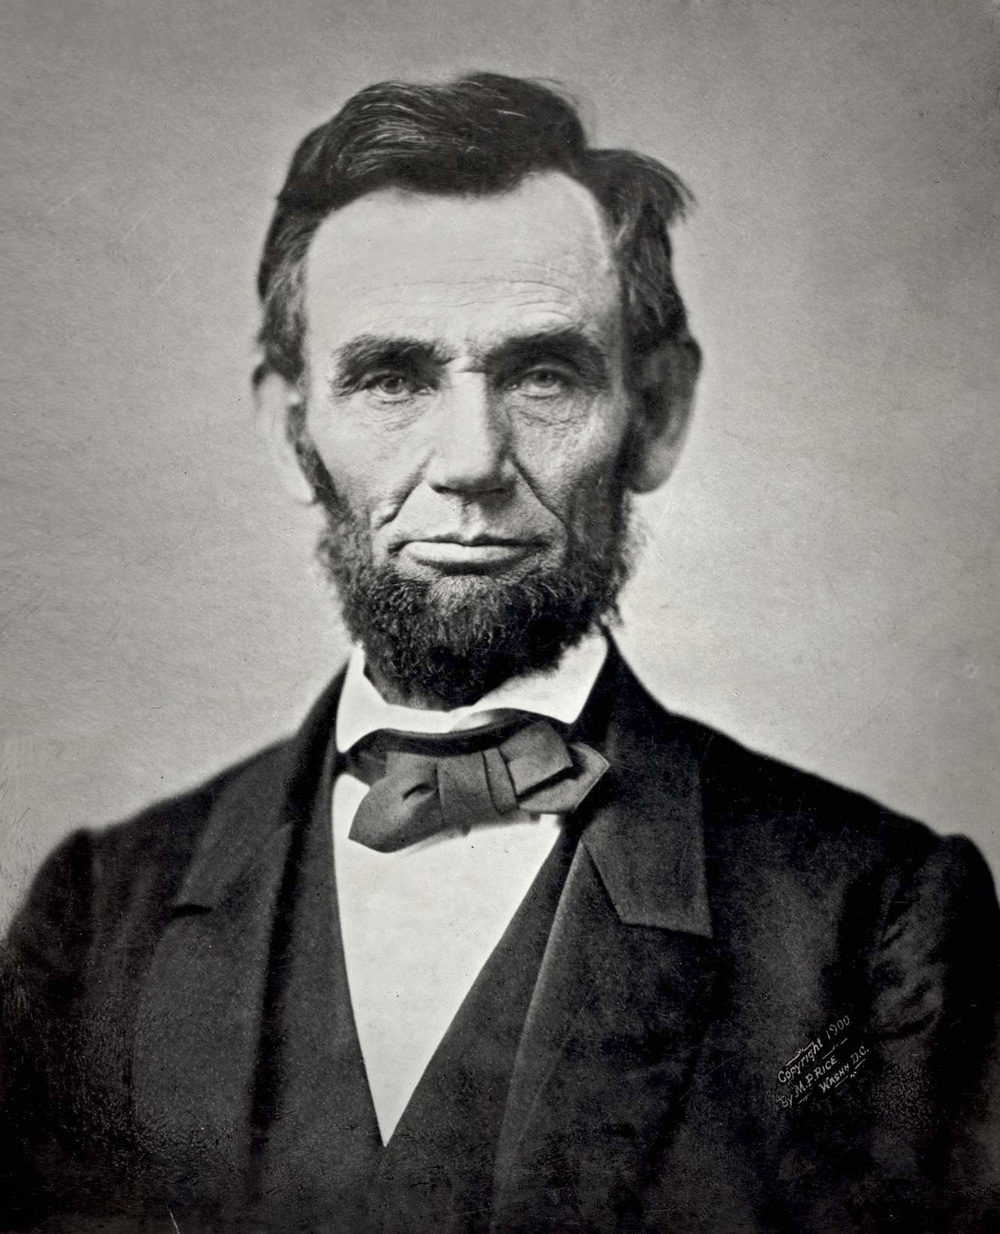 Lincoln in 1863, half-way through the Civil War.